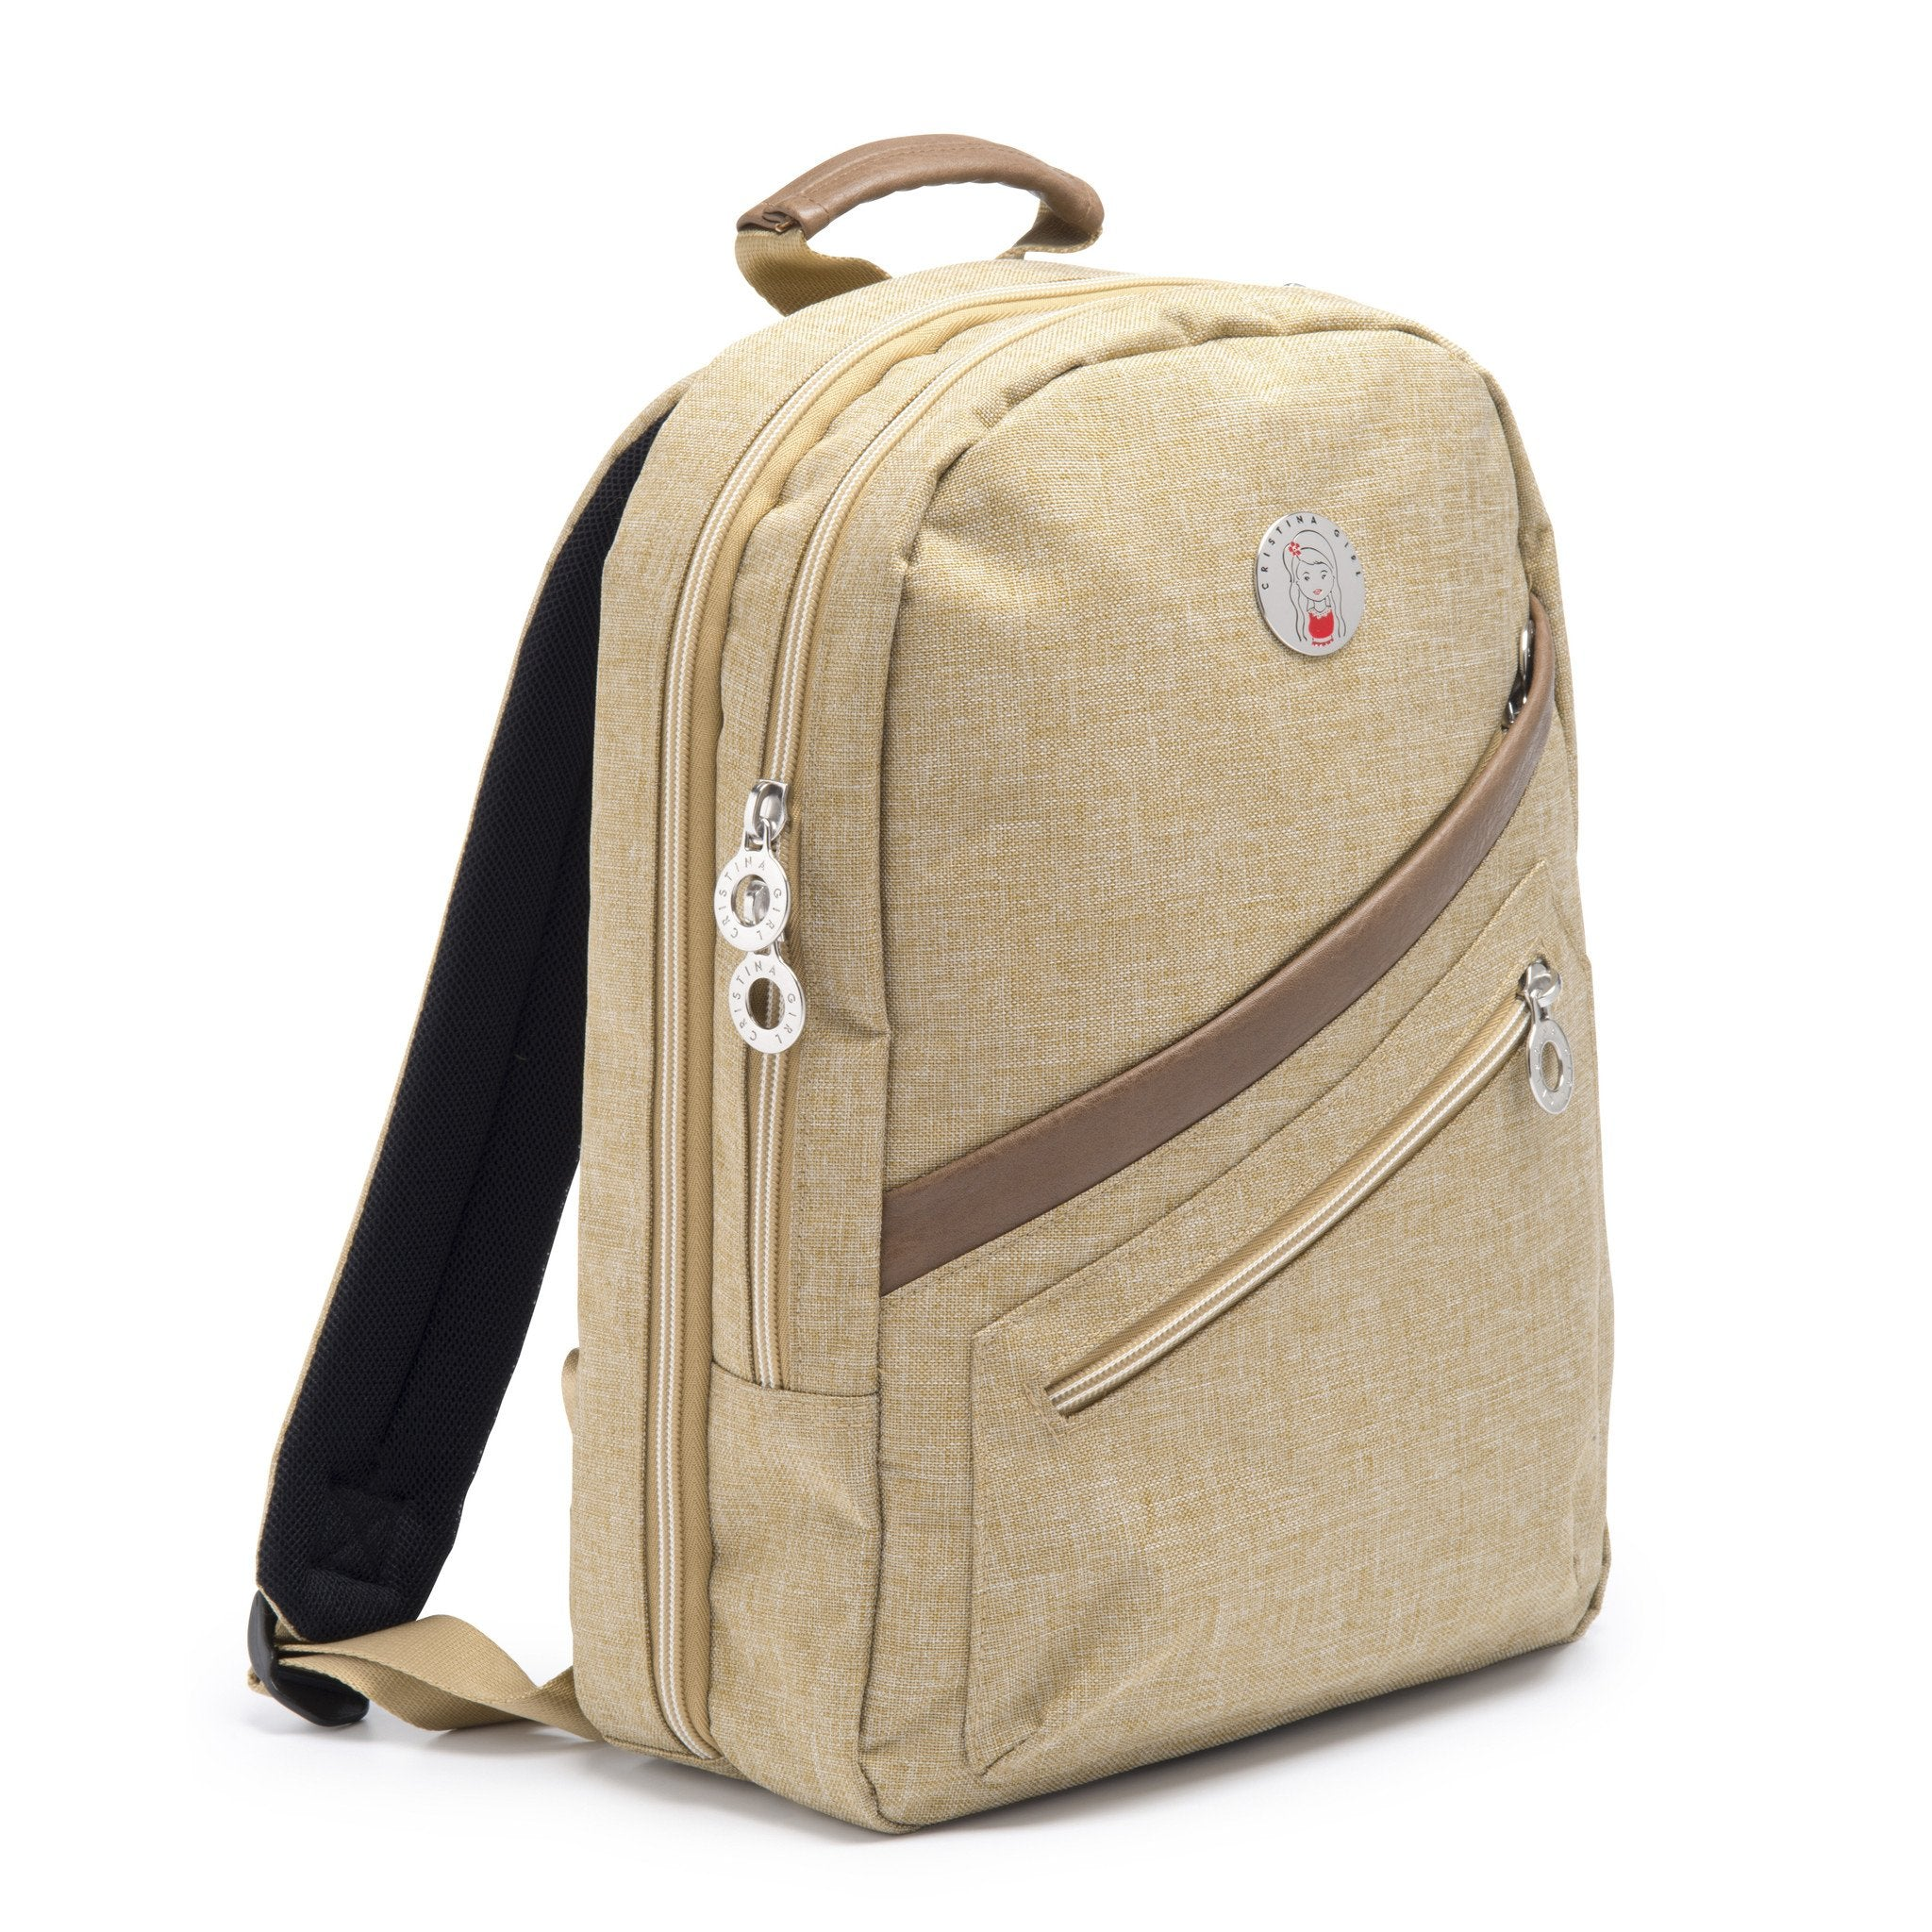 Cristina Girl Mini Backpack Ella Collection - Camel